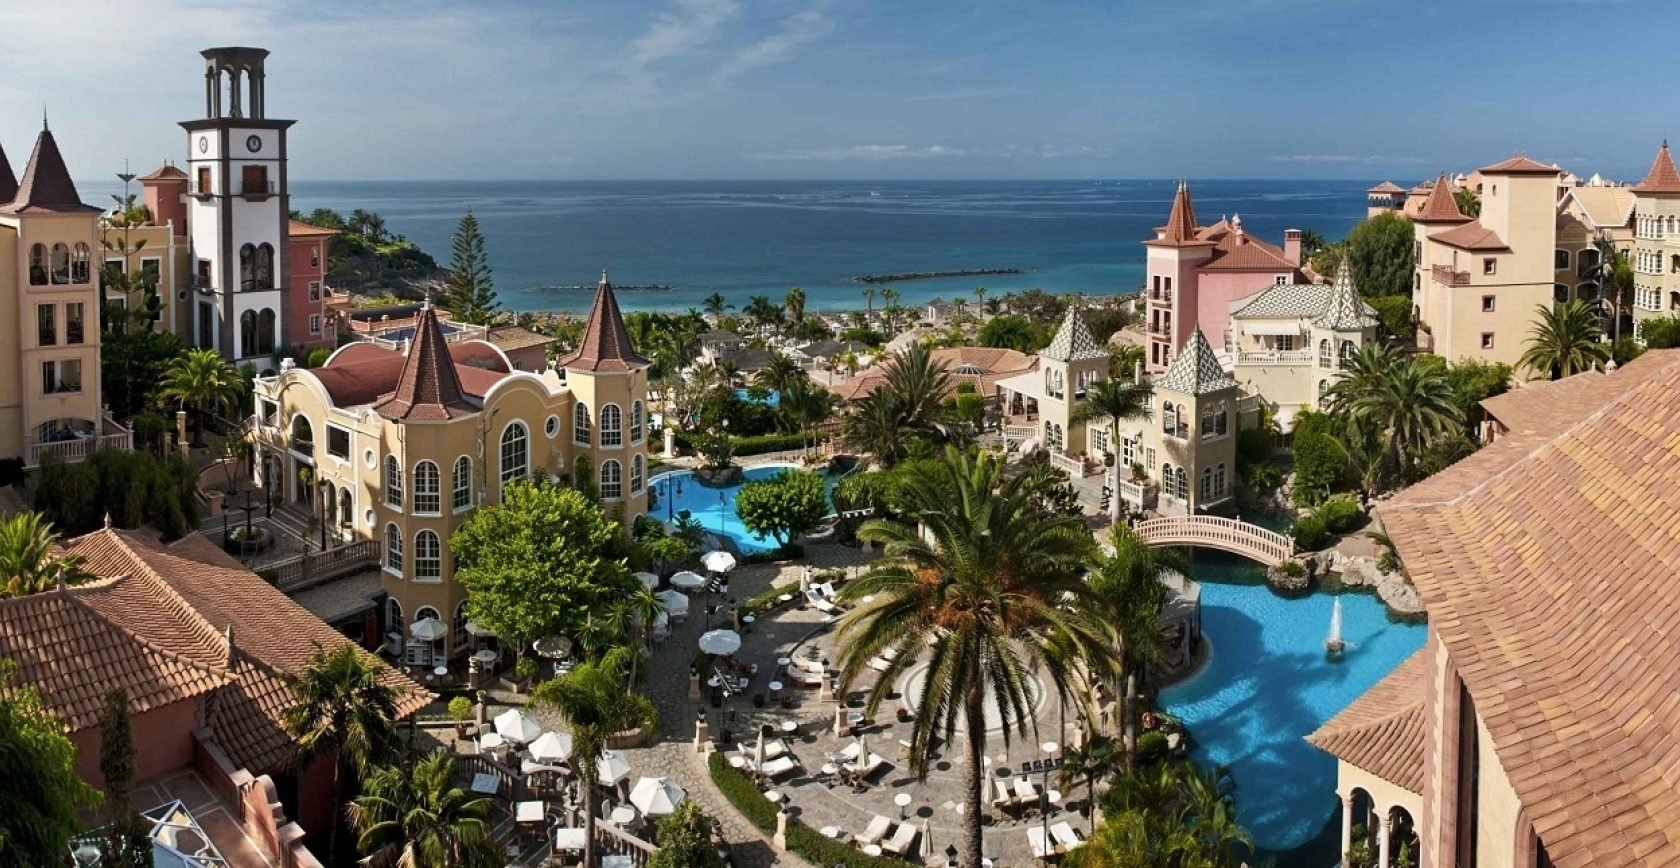 Gran hotel bahia del duque resort gallery just resorts - Hotel gran bahia del duque ...